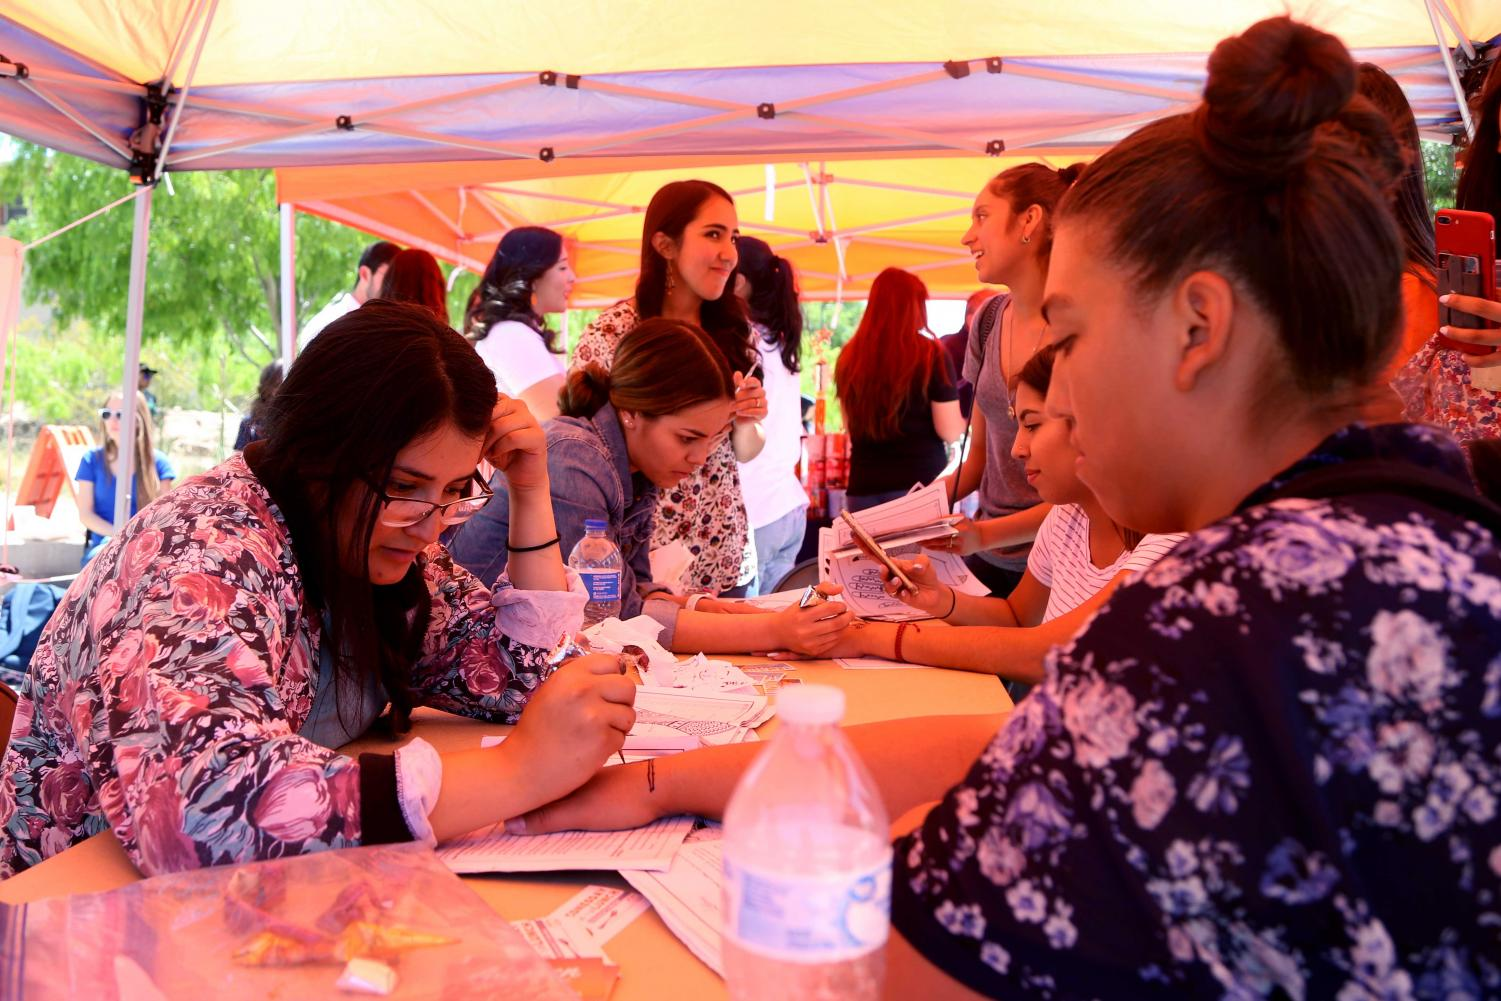 Students+had+the+opportunity+to+get+a+henna+tattoo++at+the+first+Miner+Fest++on+Wednesday%2C+April+18+at+Centennial+Plaza.+